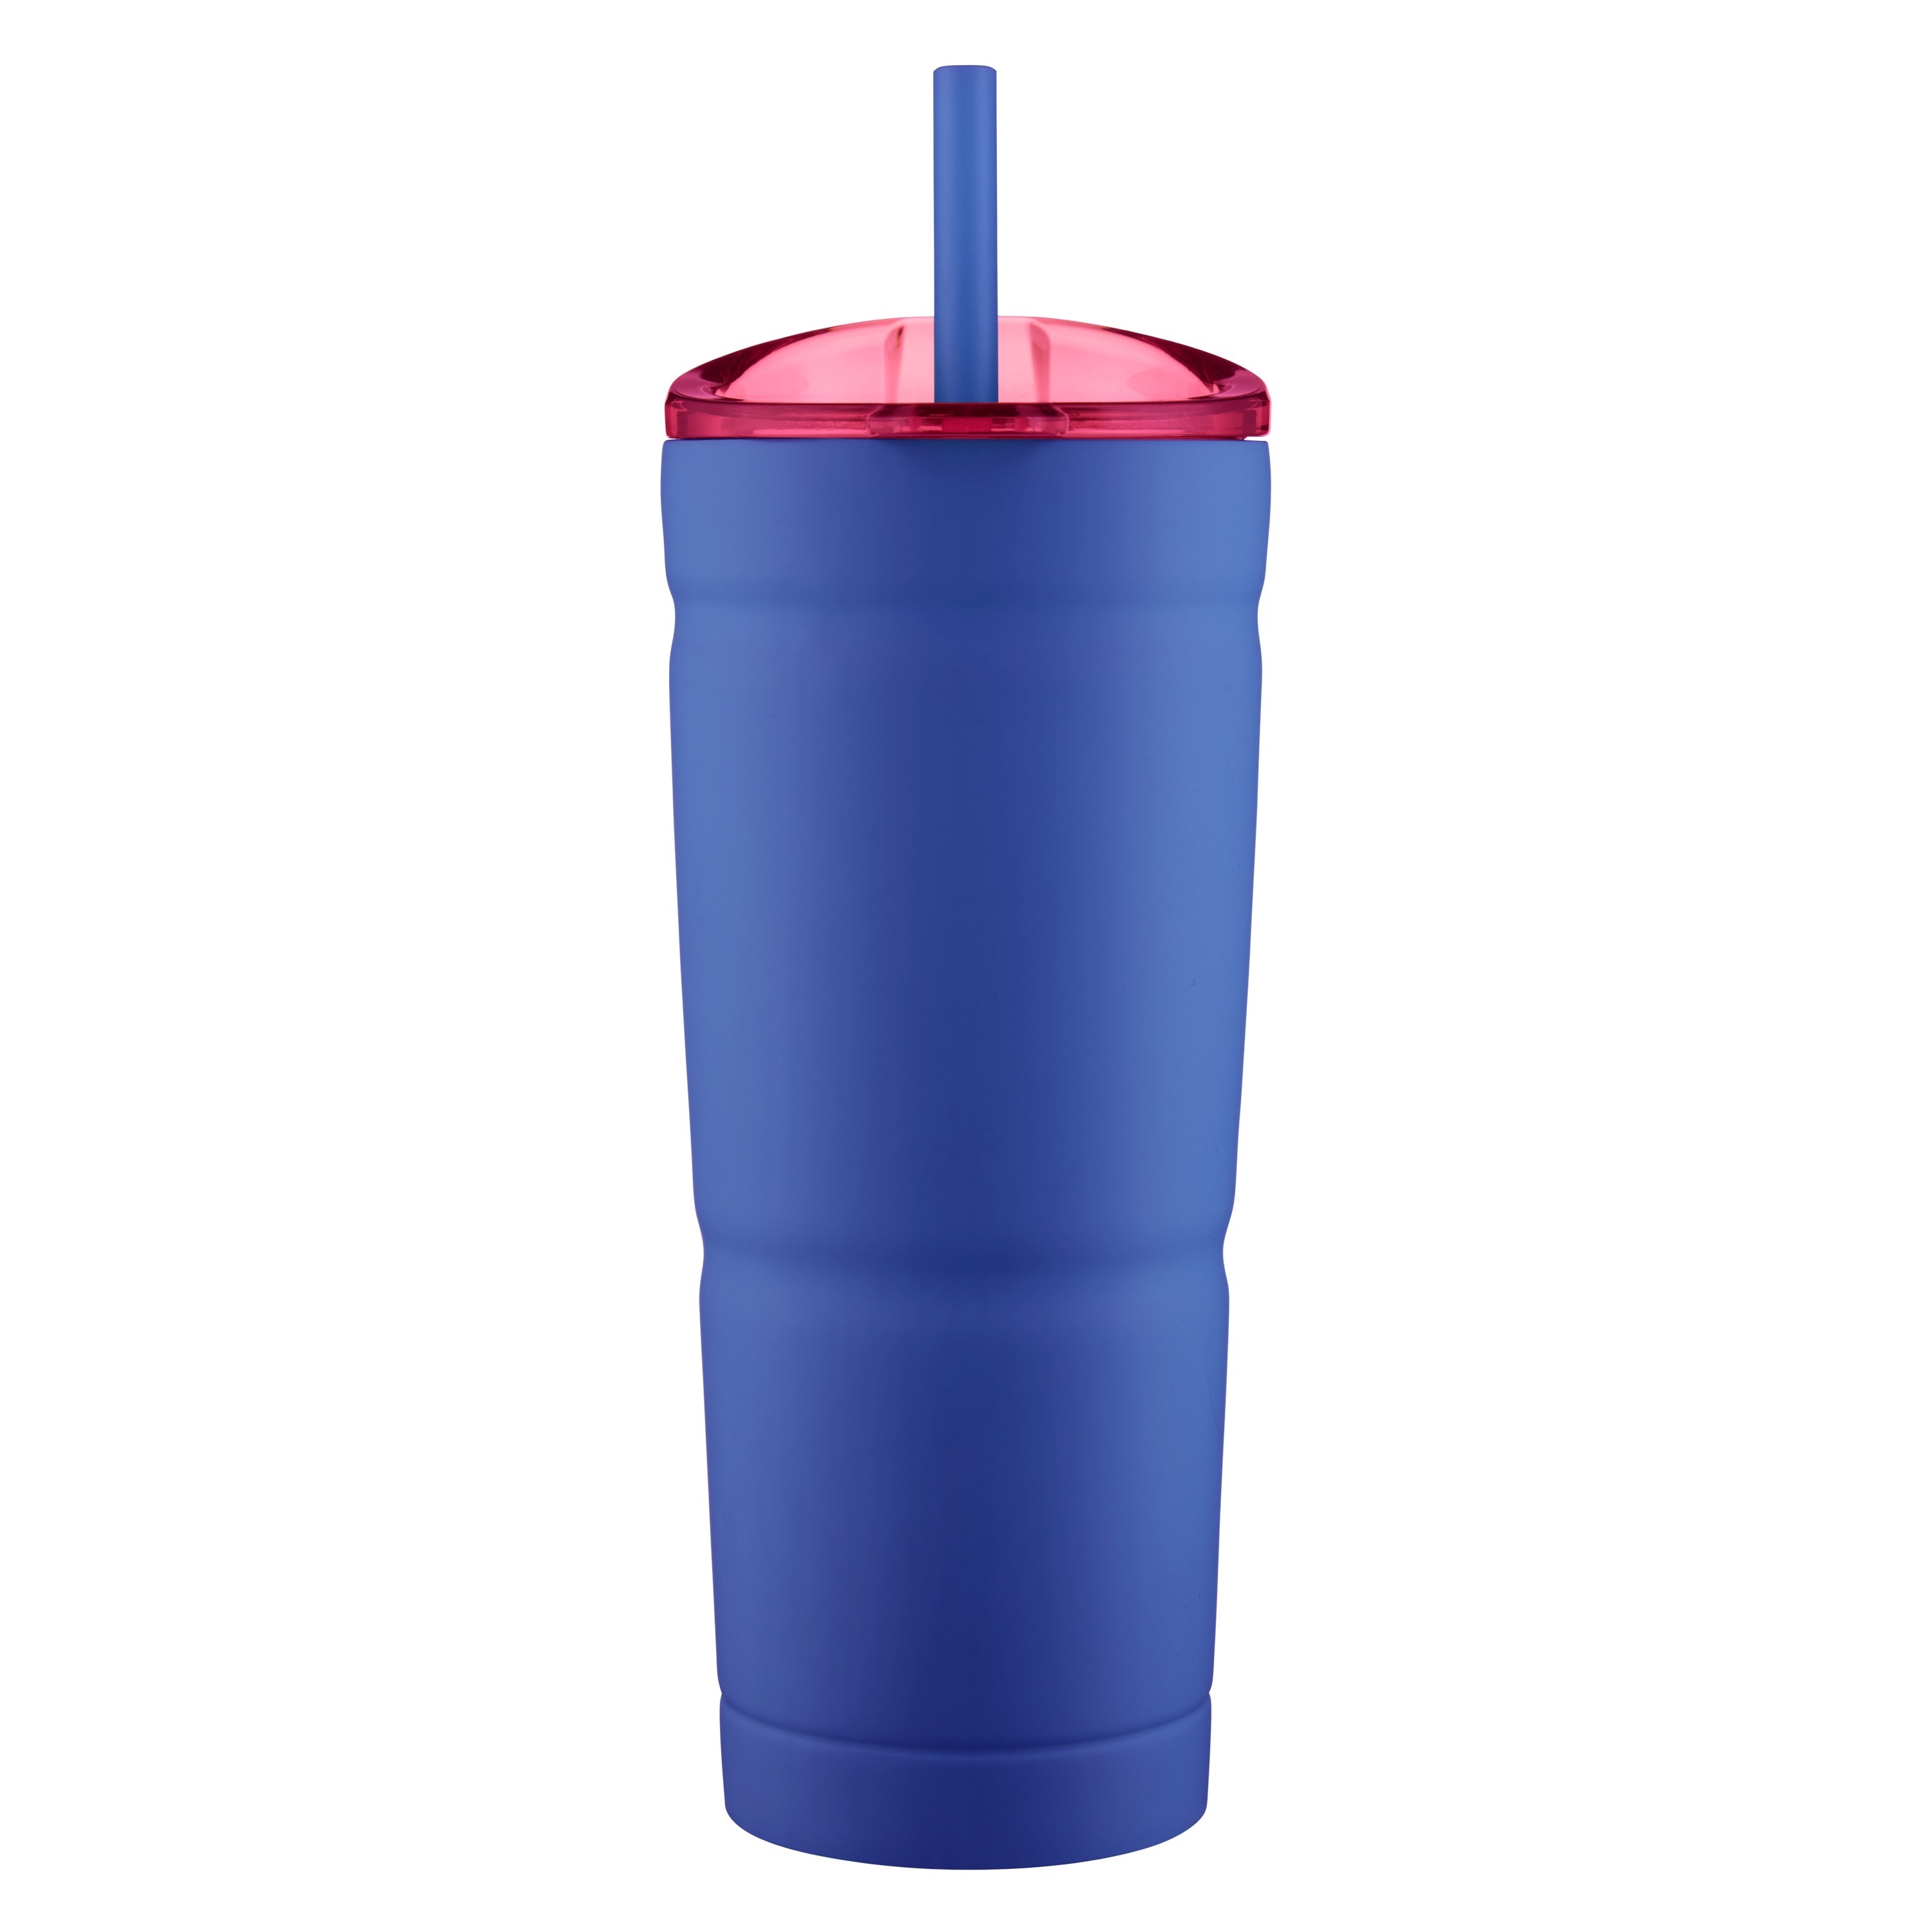 f1ed2d67285 Bubba 24 Ounce Envy Insulated Stainless Steel Matte Purple Tumbler -  Walmart.com